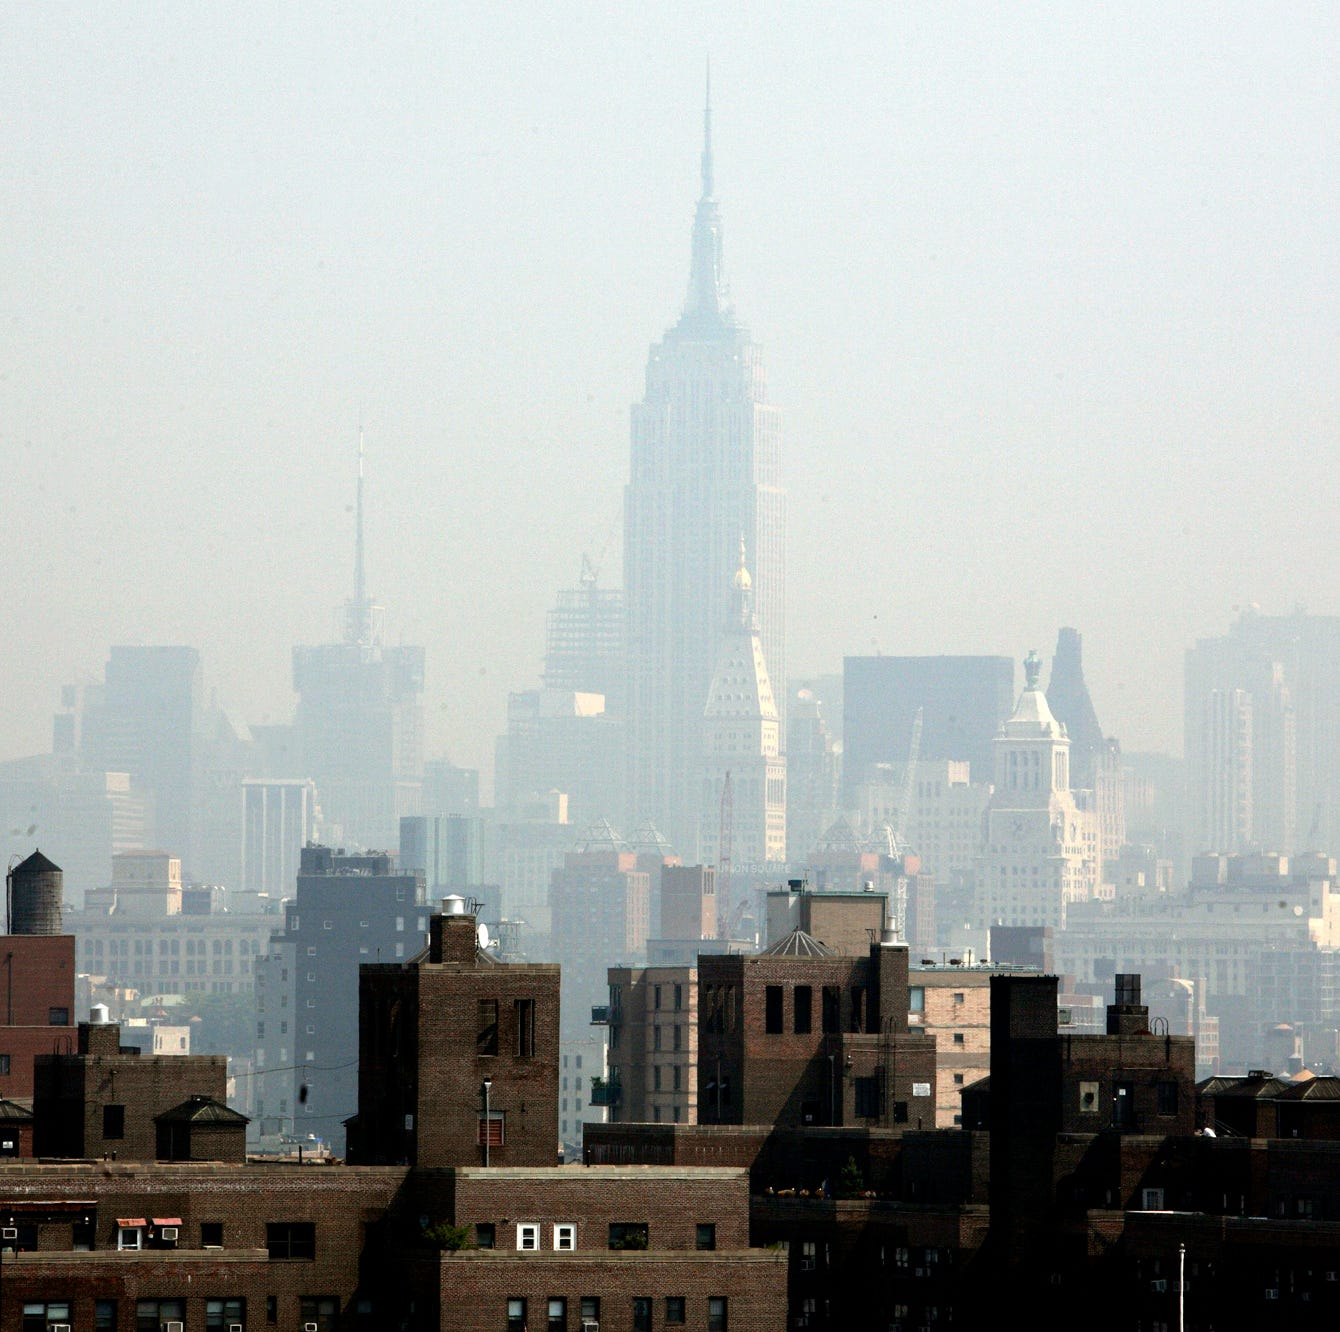 By 2080, global warming will make New York City feel like Arkansas